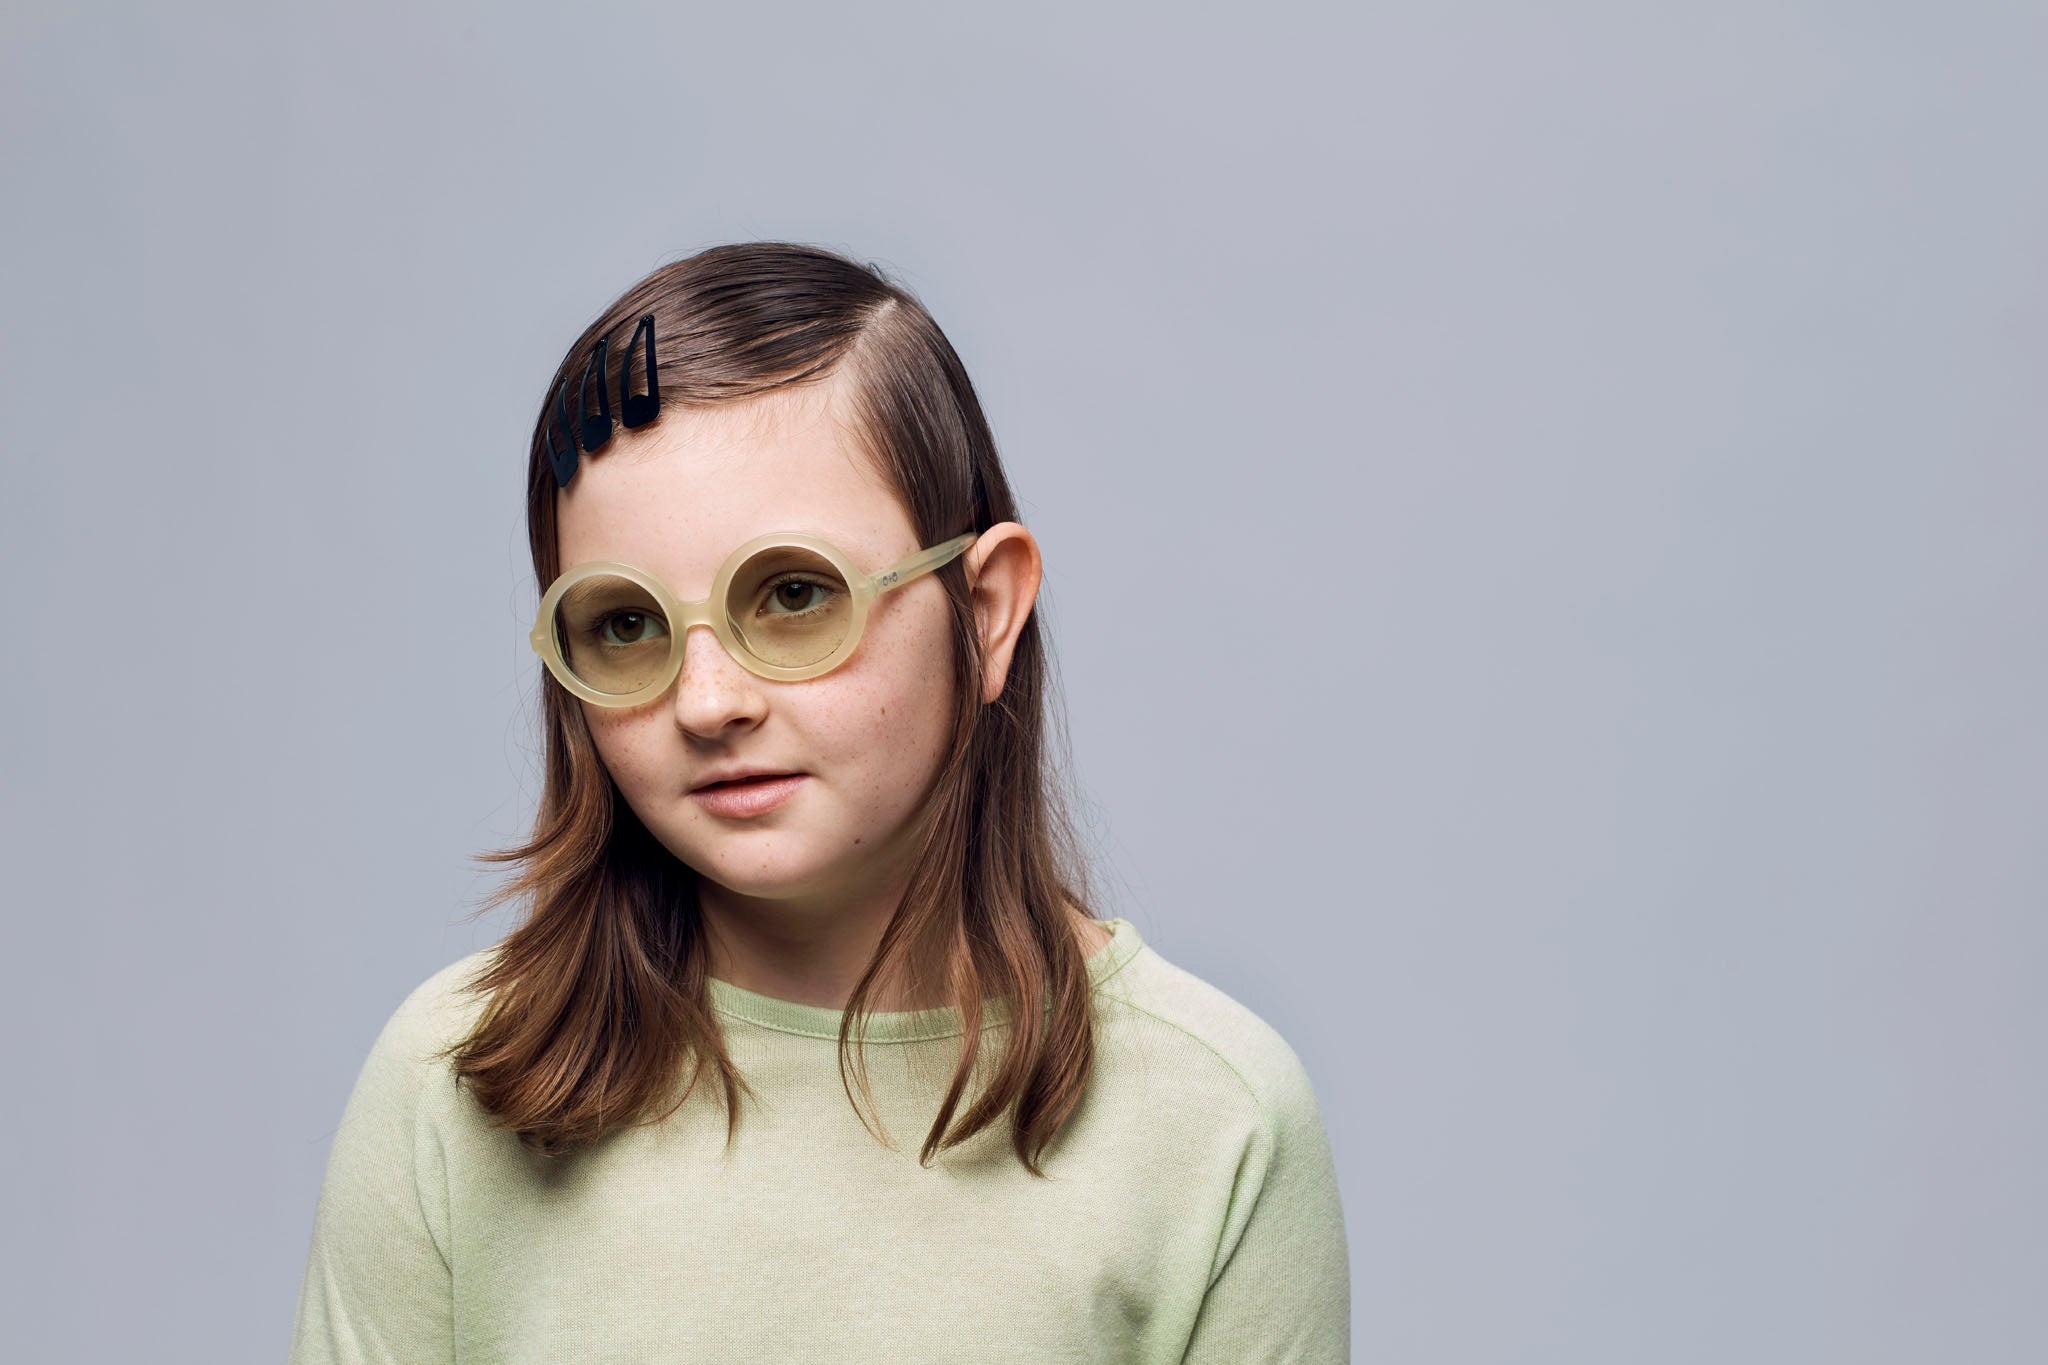 Sons_and_Daughters_Eyewear_Campaign_2019_Childrens_Kids_Sunglasses_Lenny